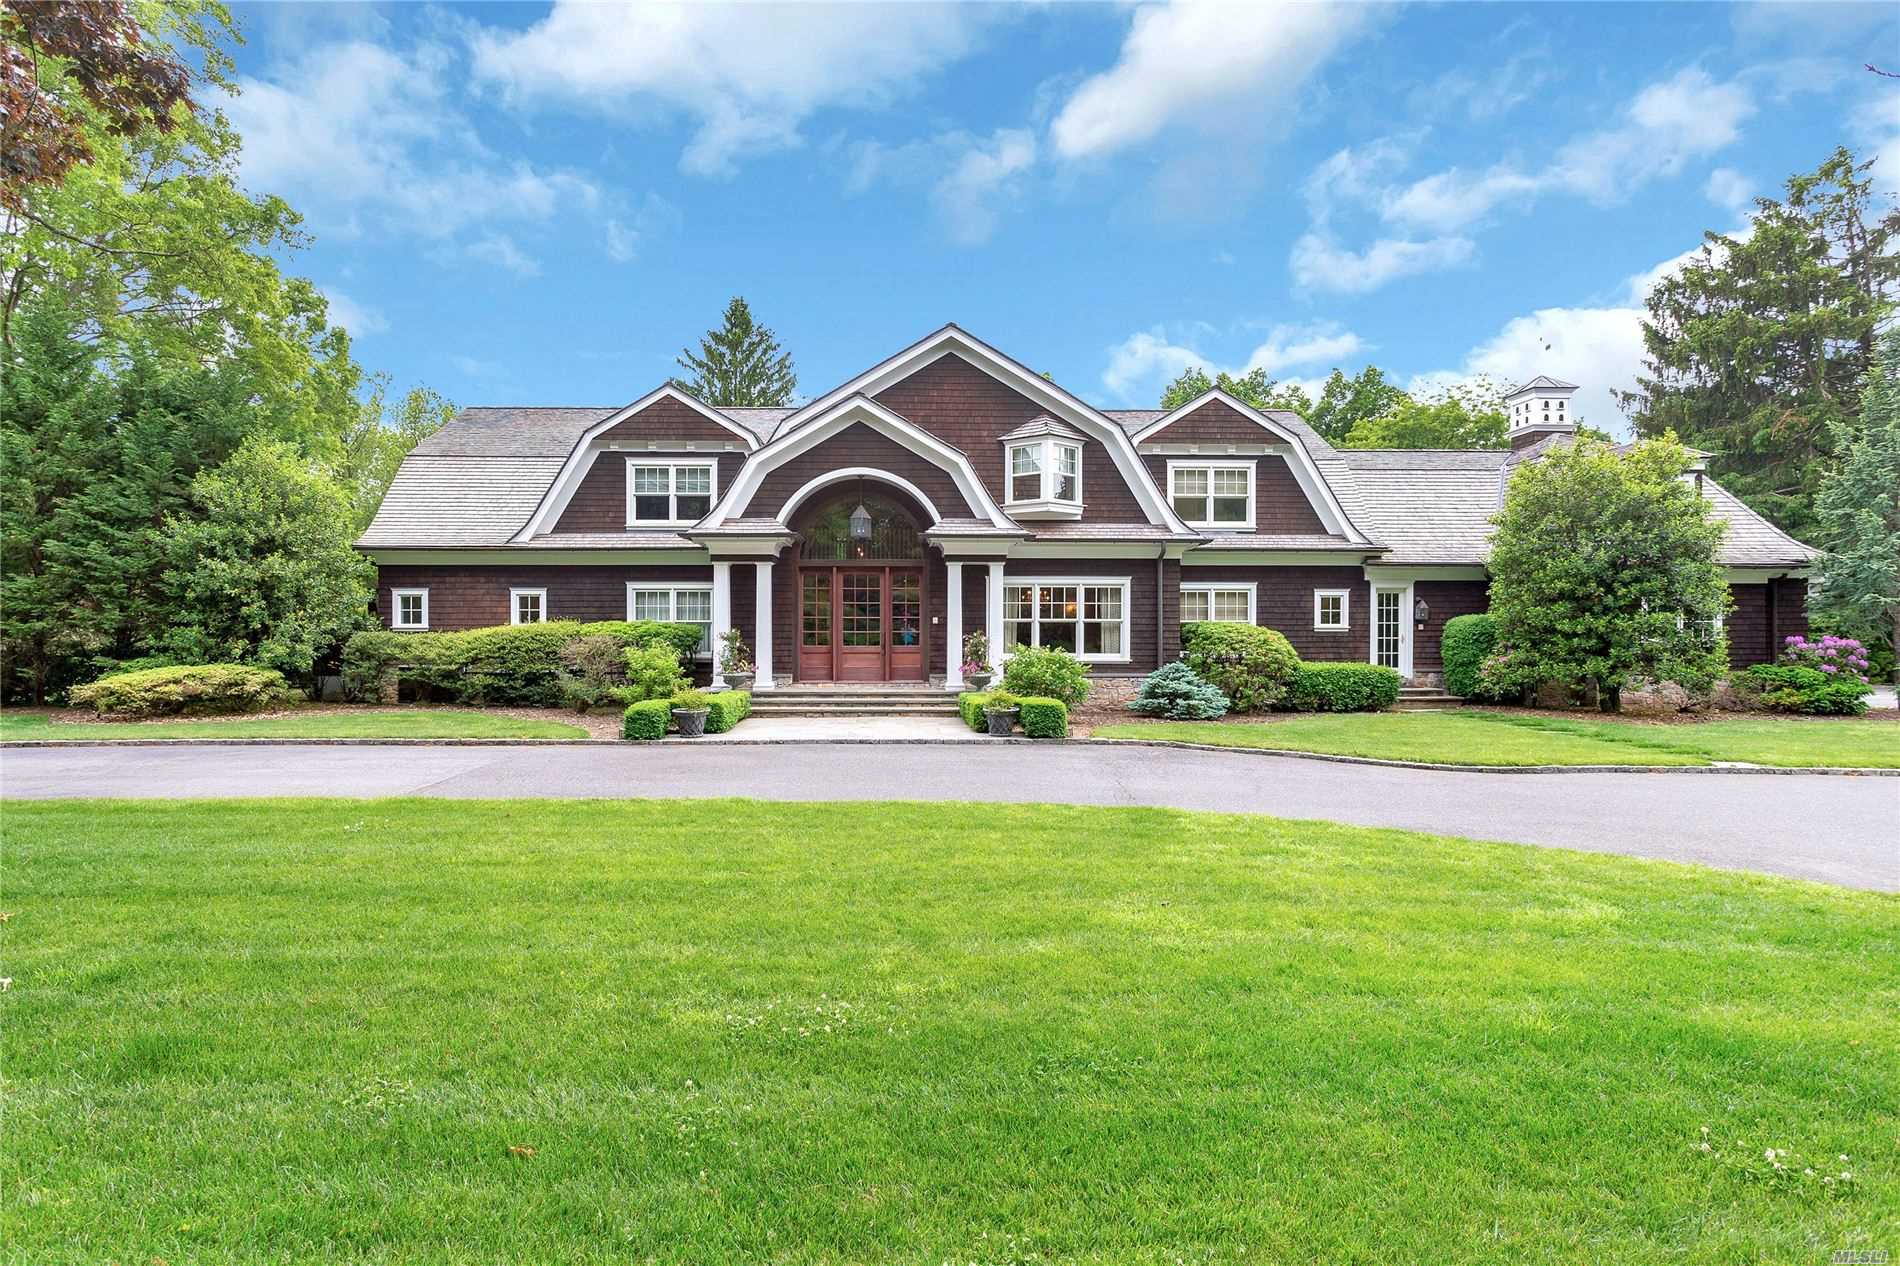 OLD WESTBURY. Spectacular Colonial Located On Over 2 Private Acres In The Village of Old Westbury. This Stunning Hamptons Style Home Features 5-Bedrooms, With Master Suite On The Main Level, And 5.55 Baths. With A Lot of Natural Light Throughout, Including Radiant Heated & Pine & Walnut Floors, Built In Speakers, Open Living Room With Stone Floor To Ceiling Wood Burning Fireplace & 2nd Floor Balcony, Breathtaking Sunroom With Fireplace & Access to Back Patio, Great Game Room/Den With Bar, Fantastic Chefs Kitchen With Breakfast Nook & Butler Pantry With Access to Formal Dining Room, Inground Heated Gunite Pool & Patio For Great Entertaining, And Much More!!